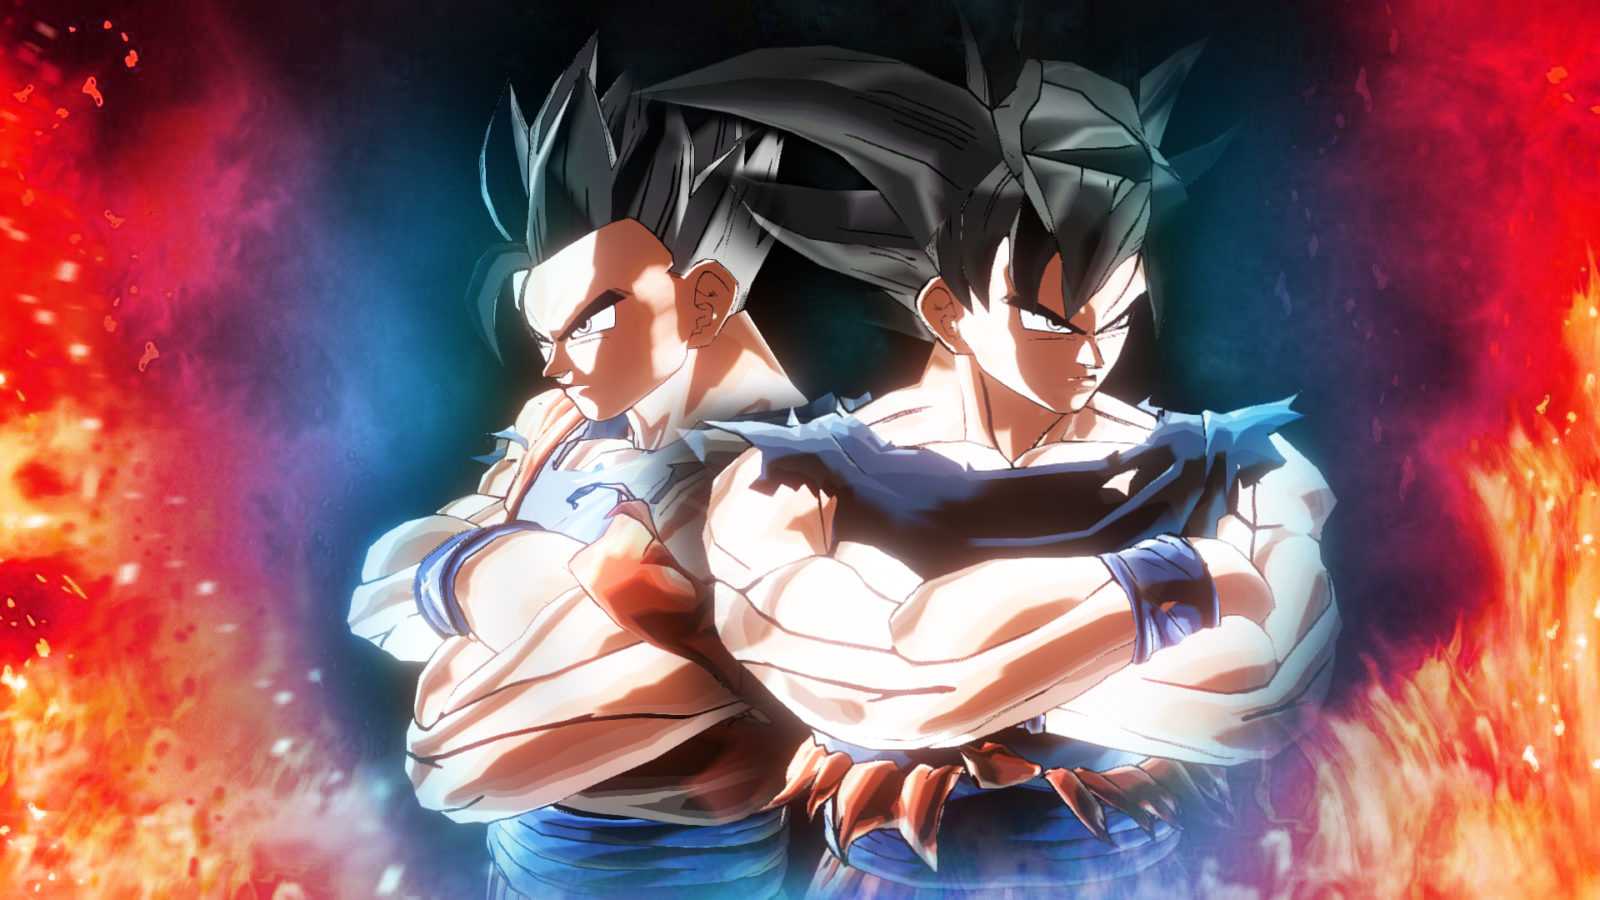 Goku Master Ultra Instinct Hd Wallpaper New Wallpapers